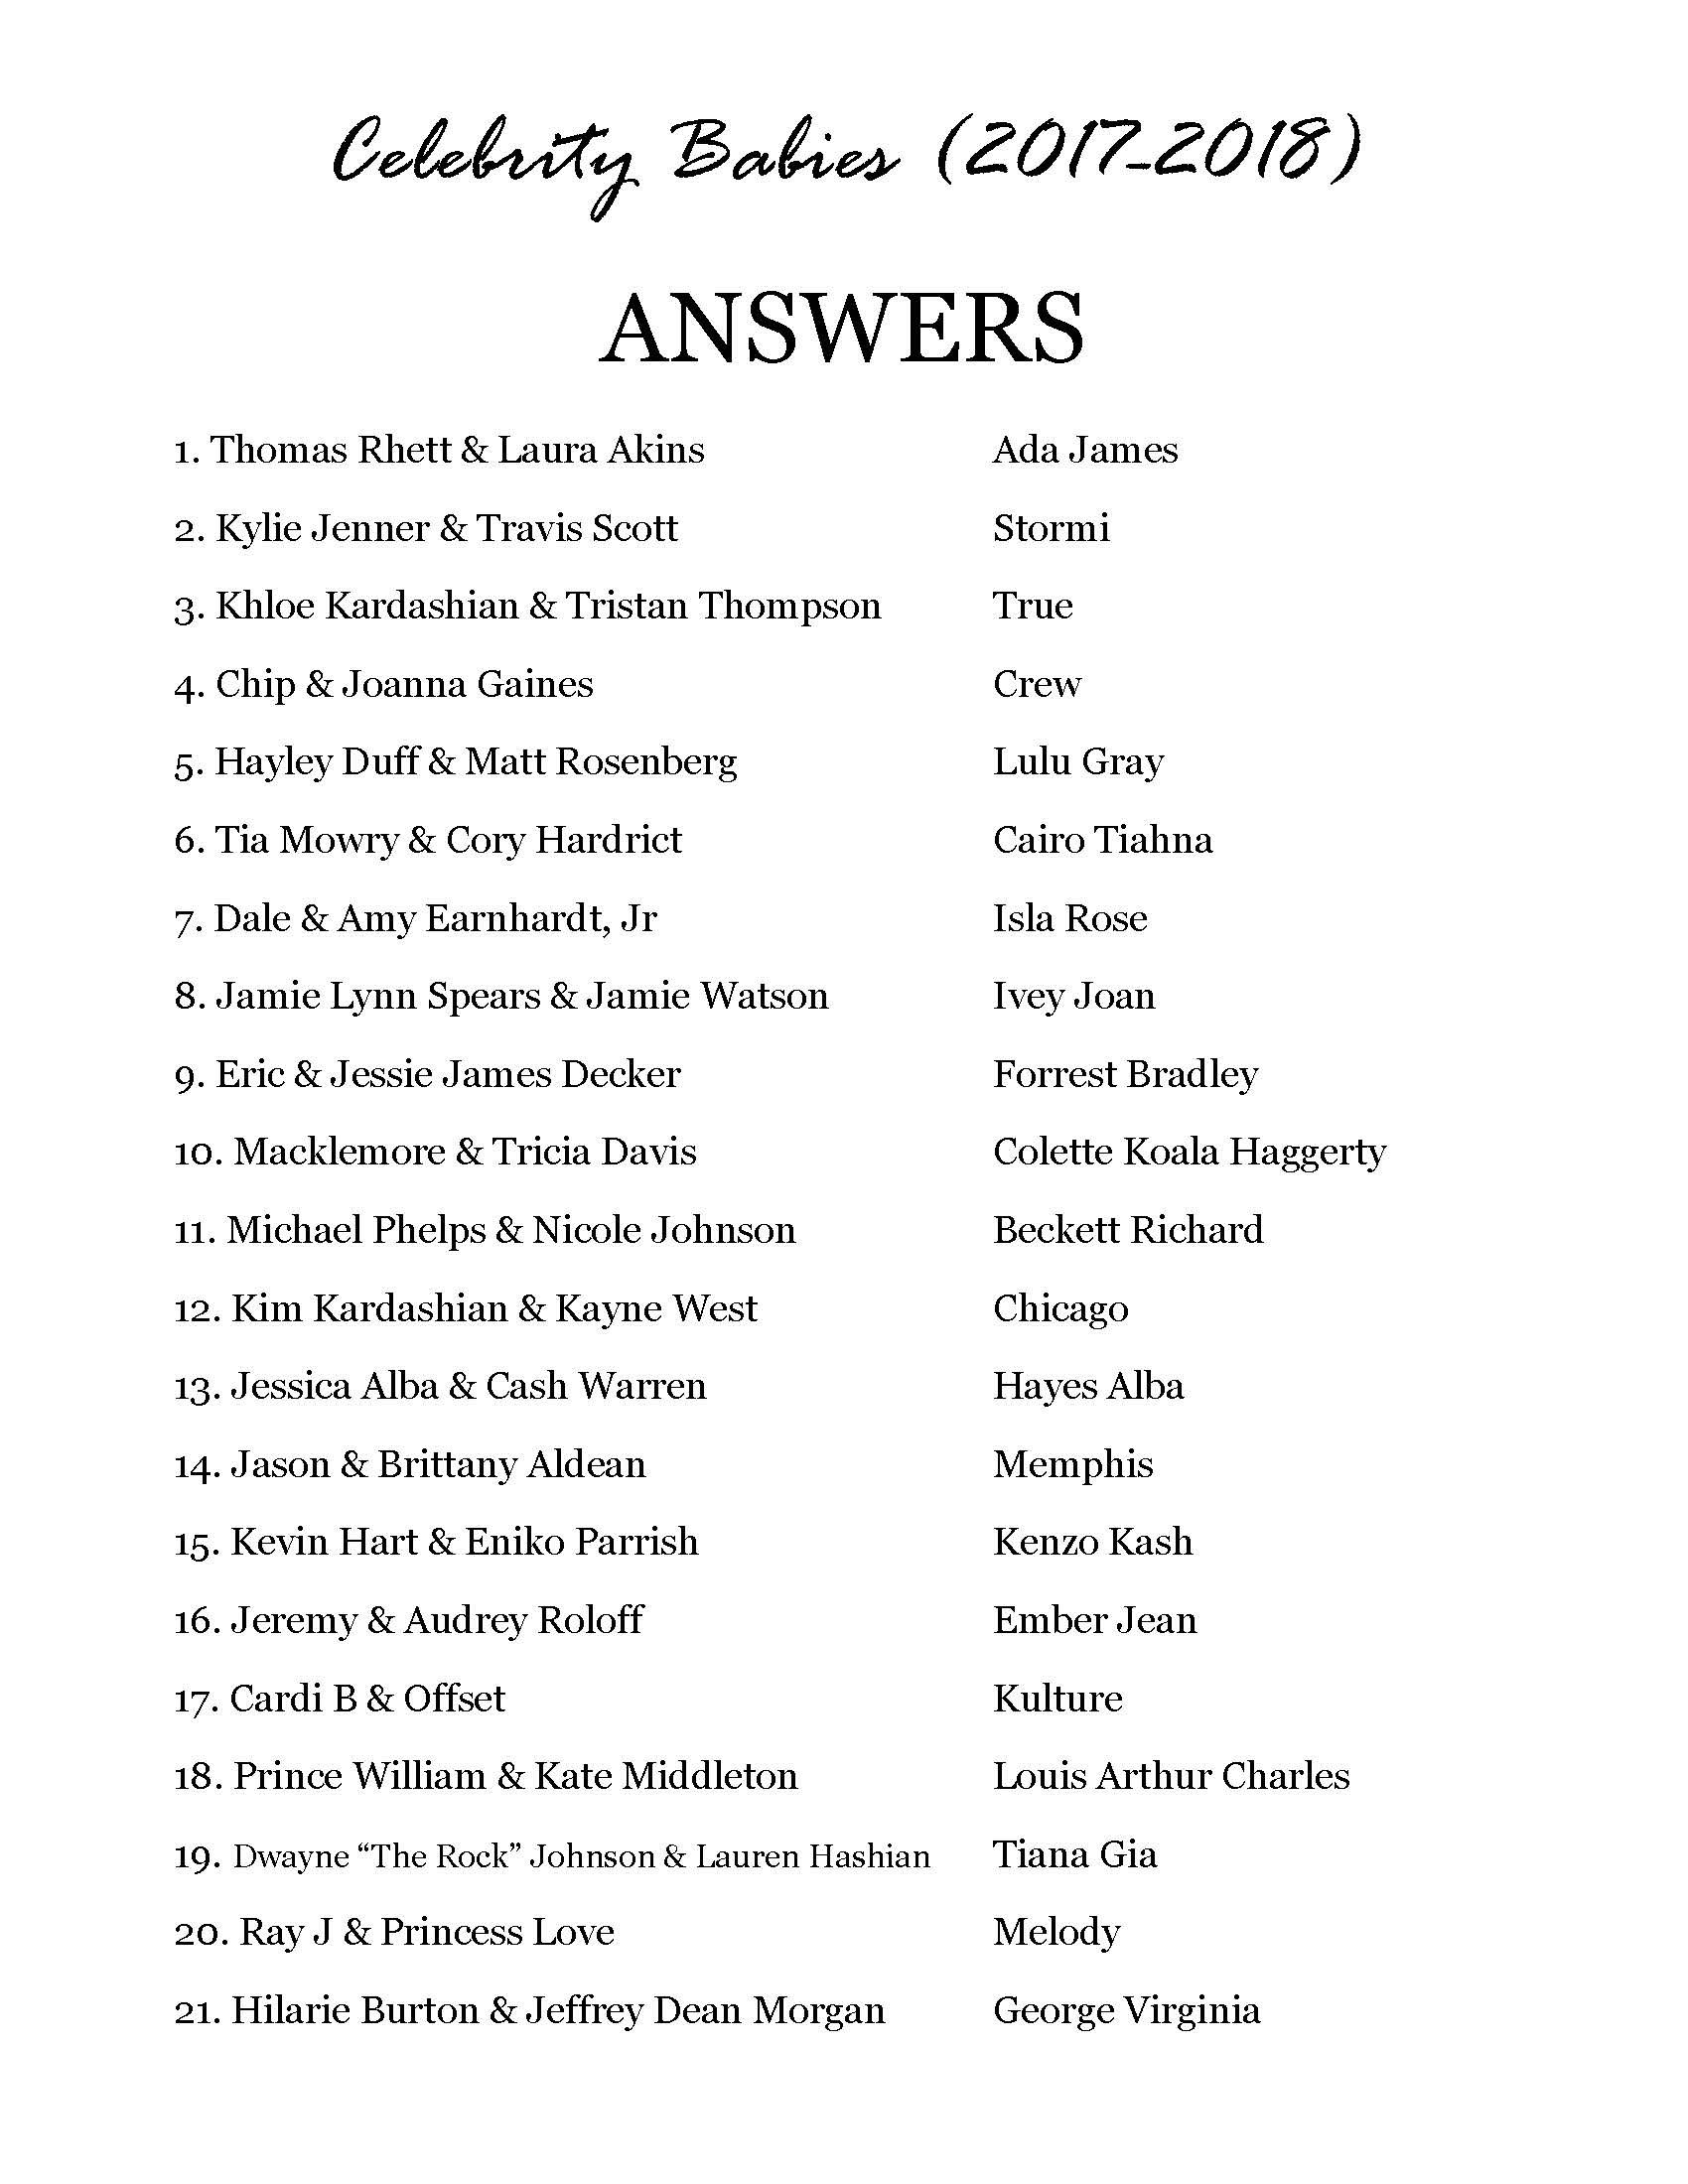 Celebrity Baby Name Shower Game Free Printable Answers Babyshower Free Game Answers Celebrity Babies Celebrity Baby Names Baby Names